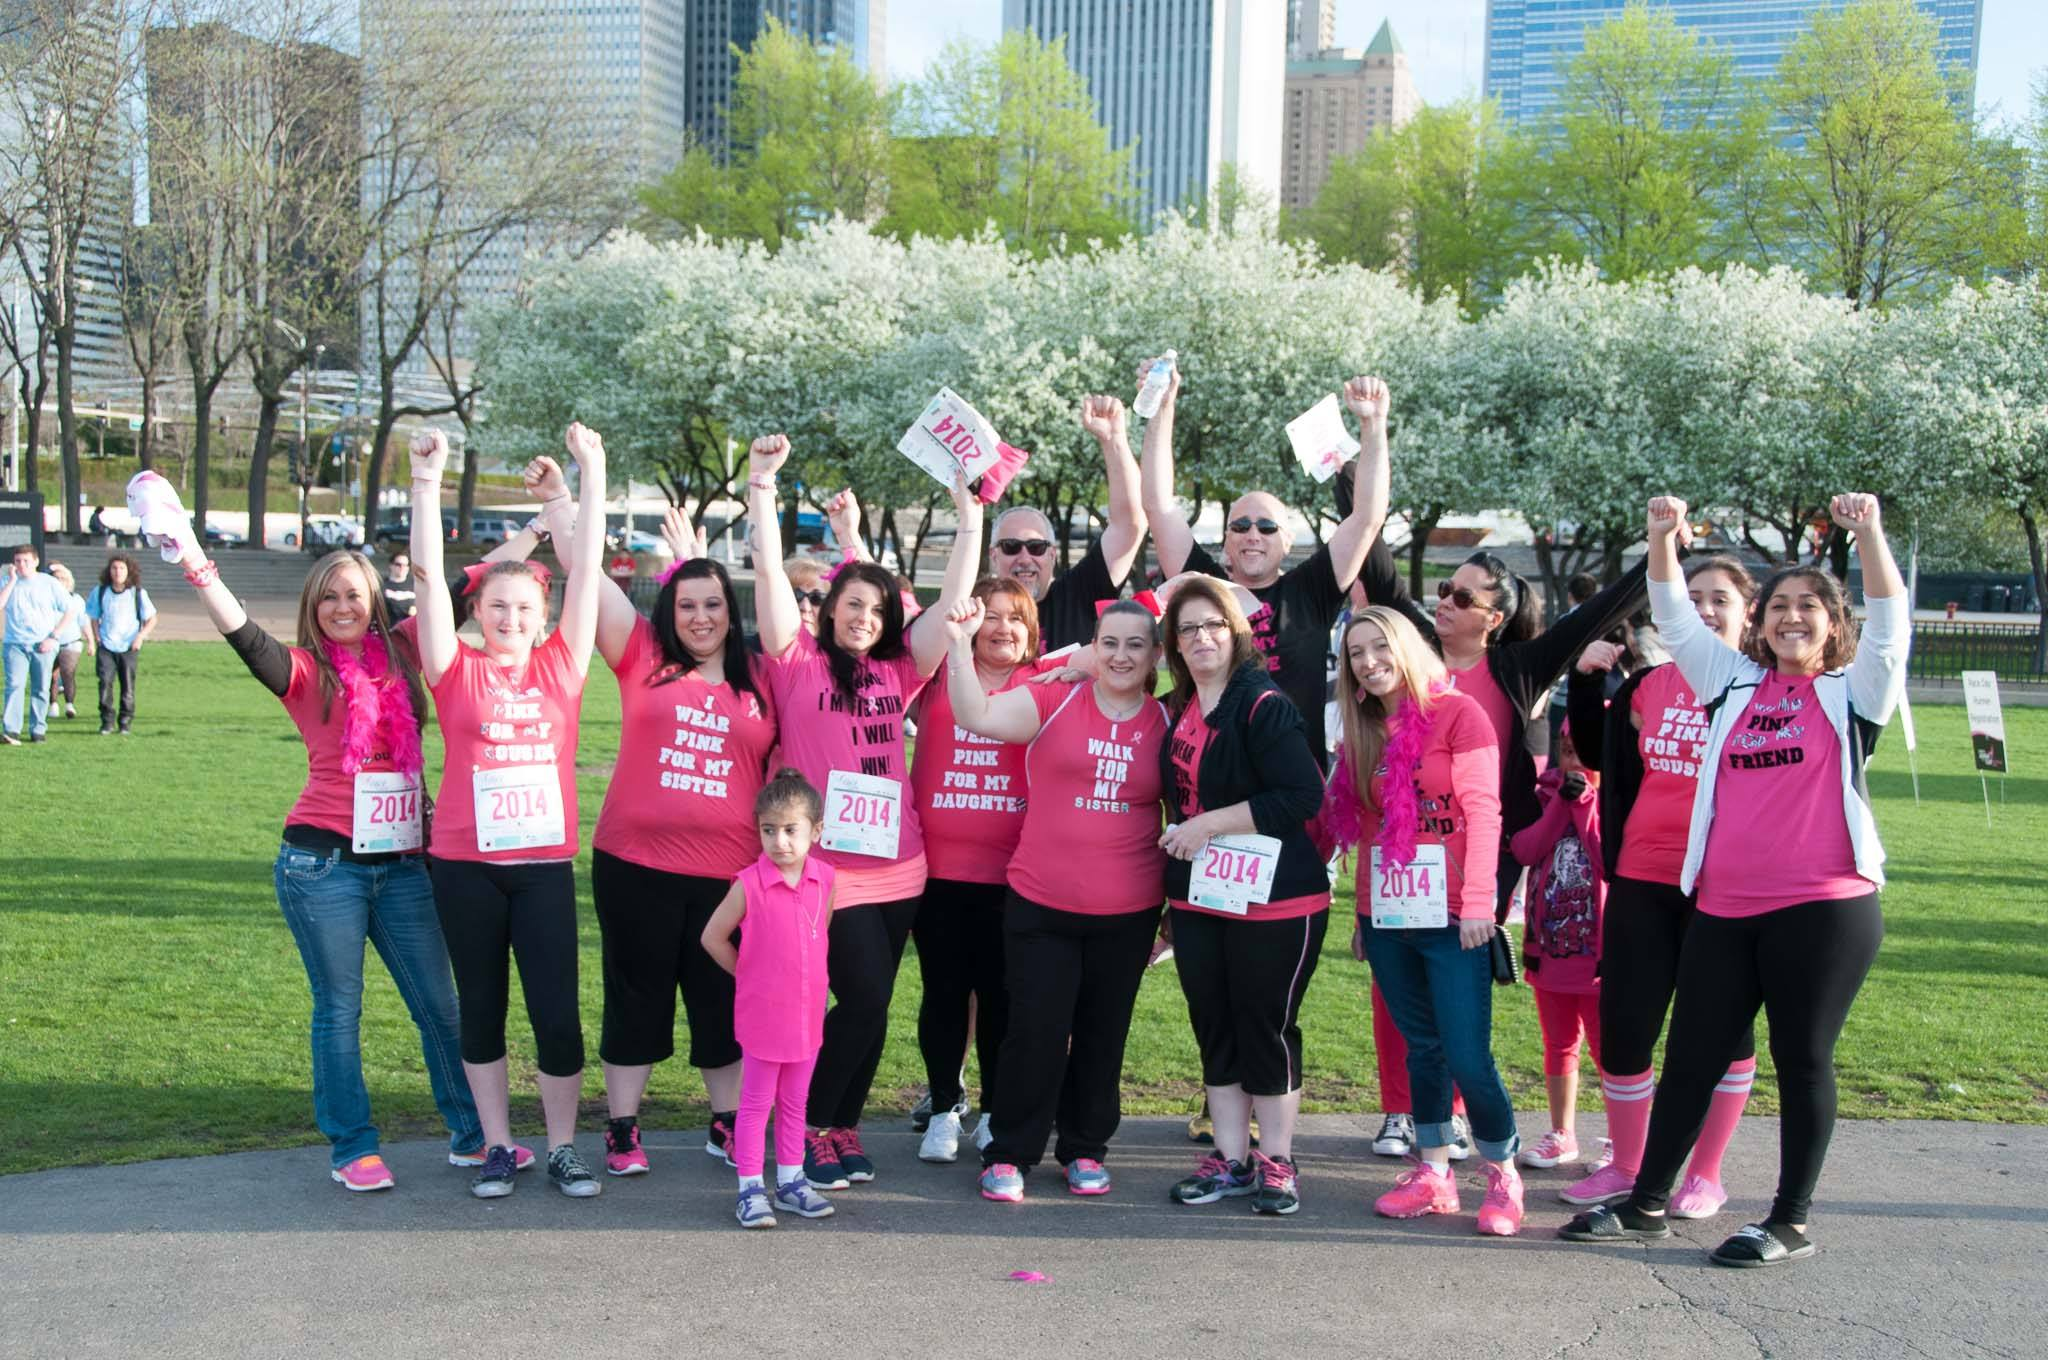 SUSAN G. KOMEN CHICAGO'S 2016 RACE FOR THE CURE® KICKS OFF MOTHER'S DAY,